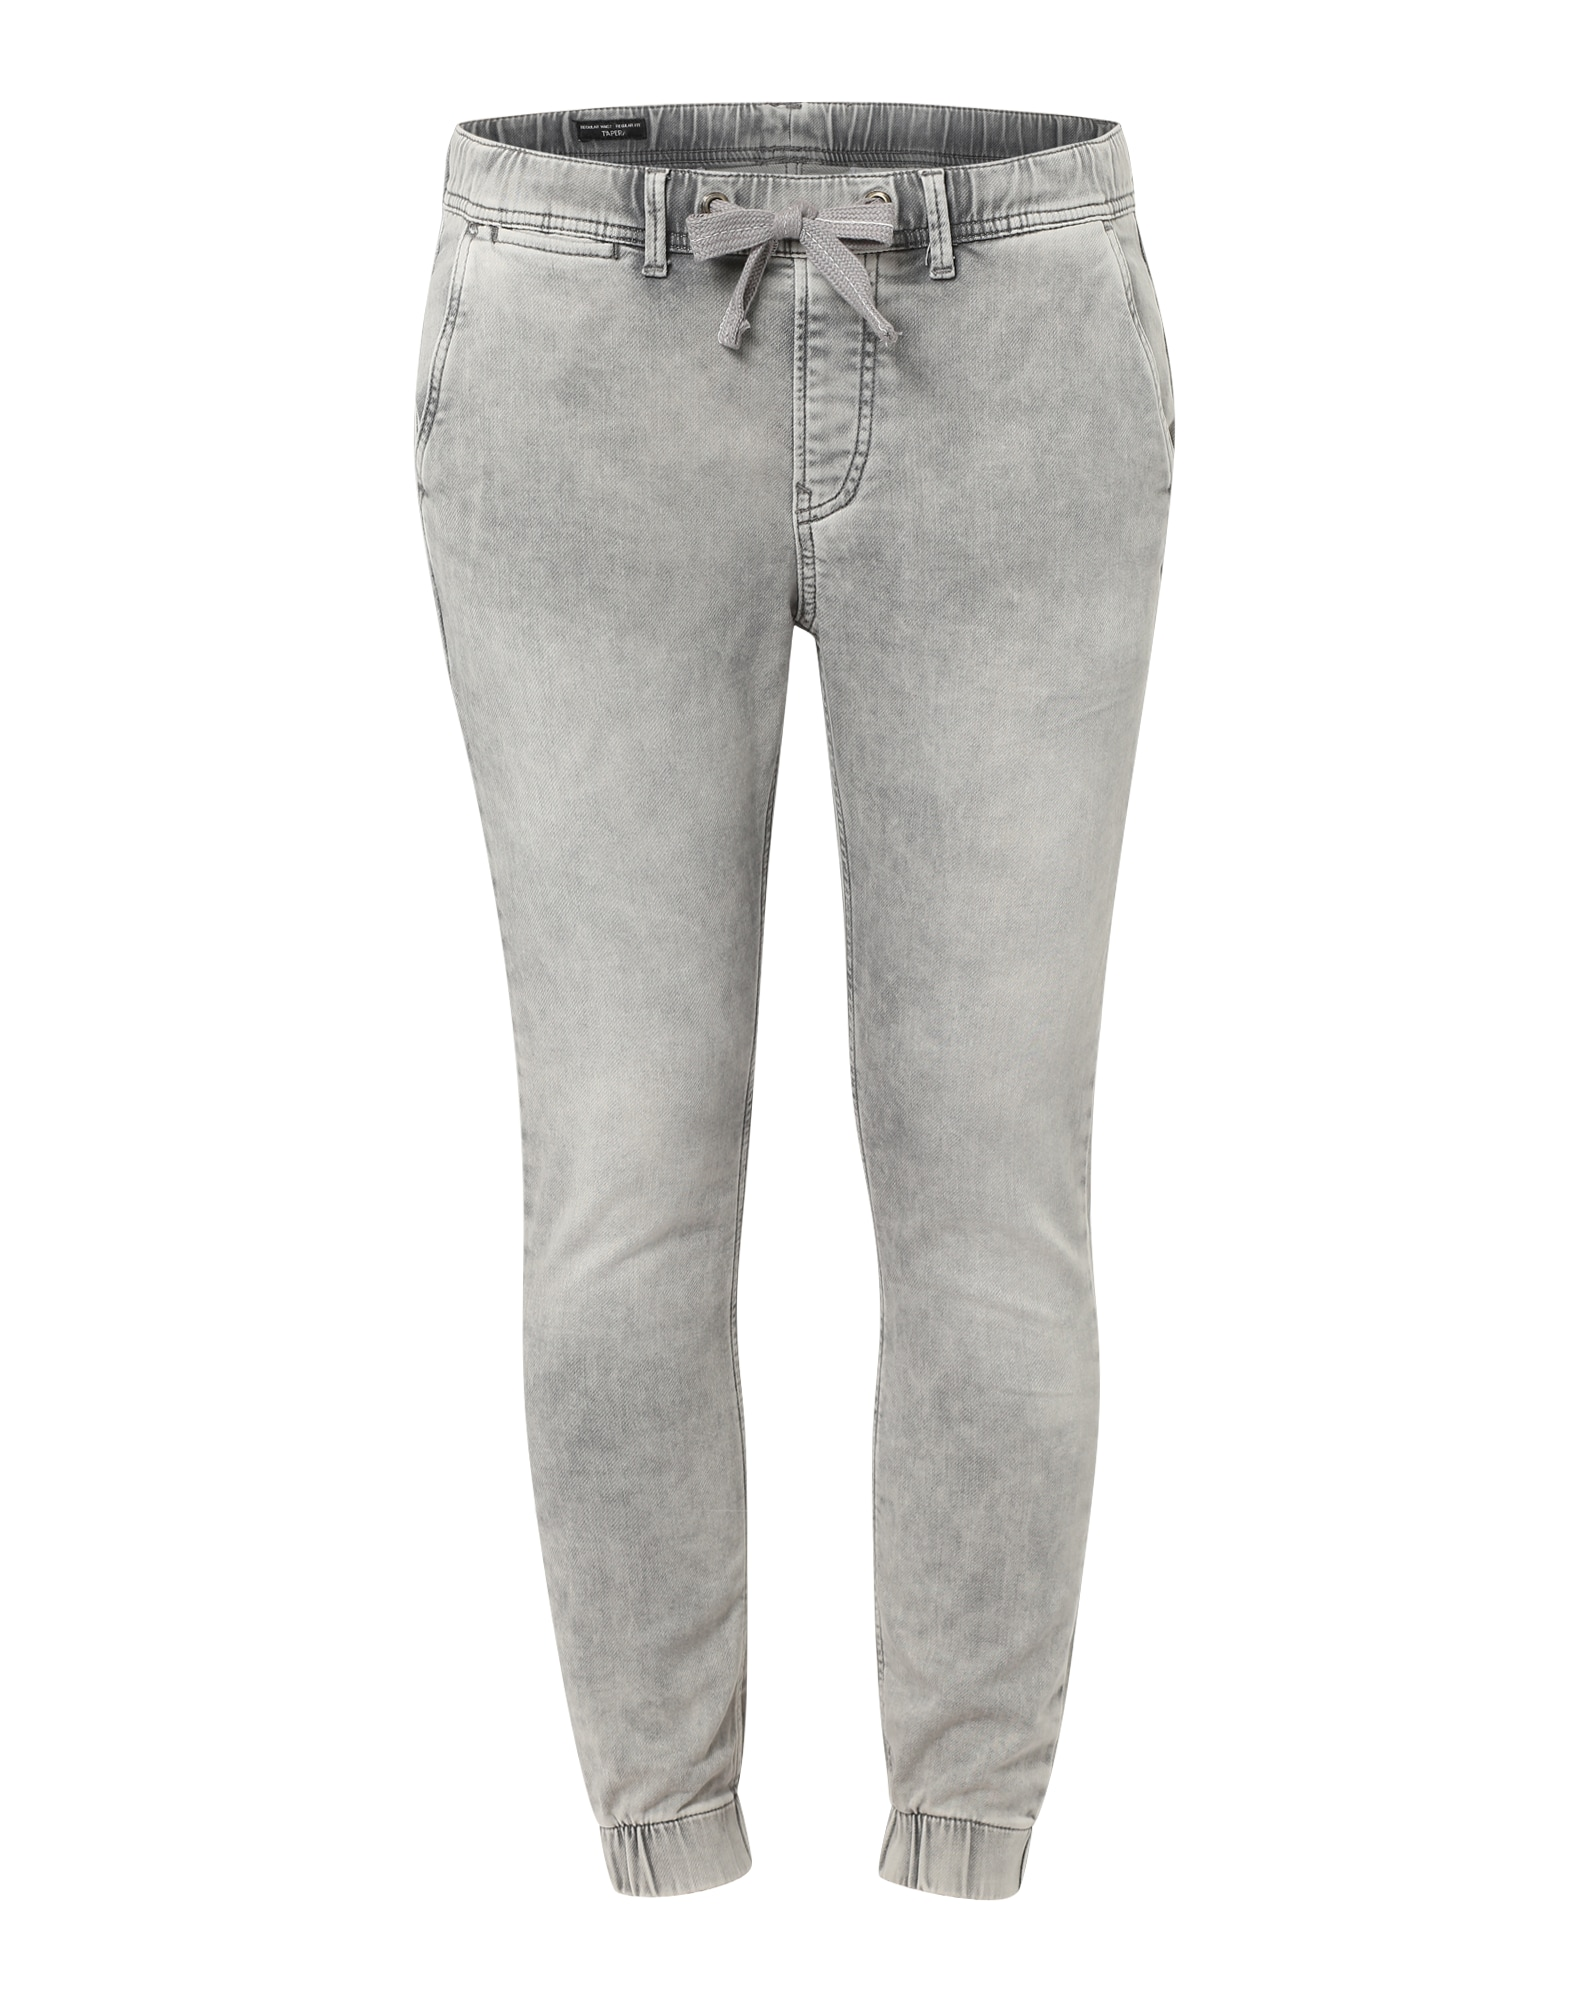 Pepe Jeans Dames Jeans COSIE grijs